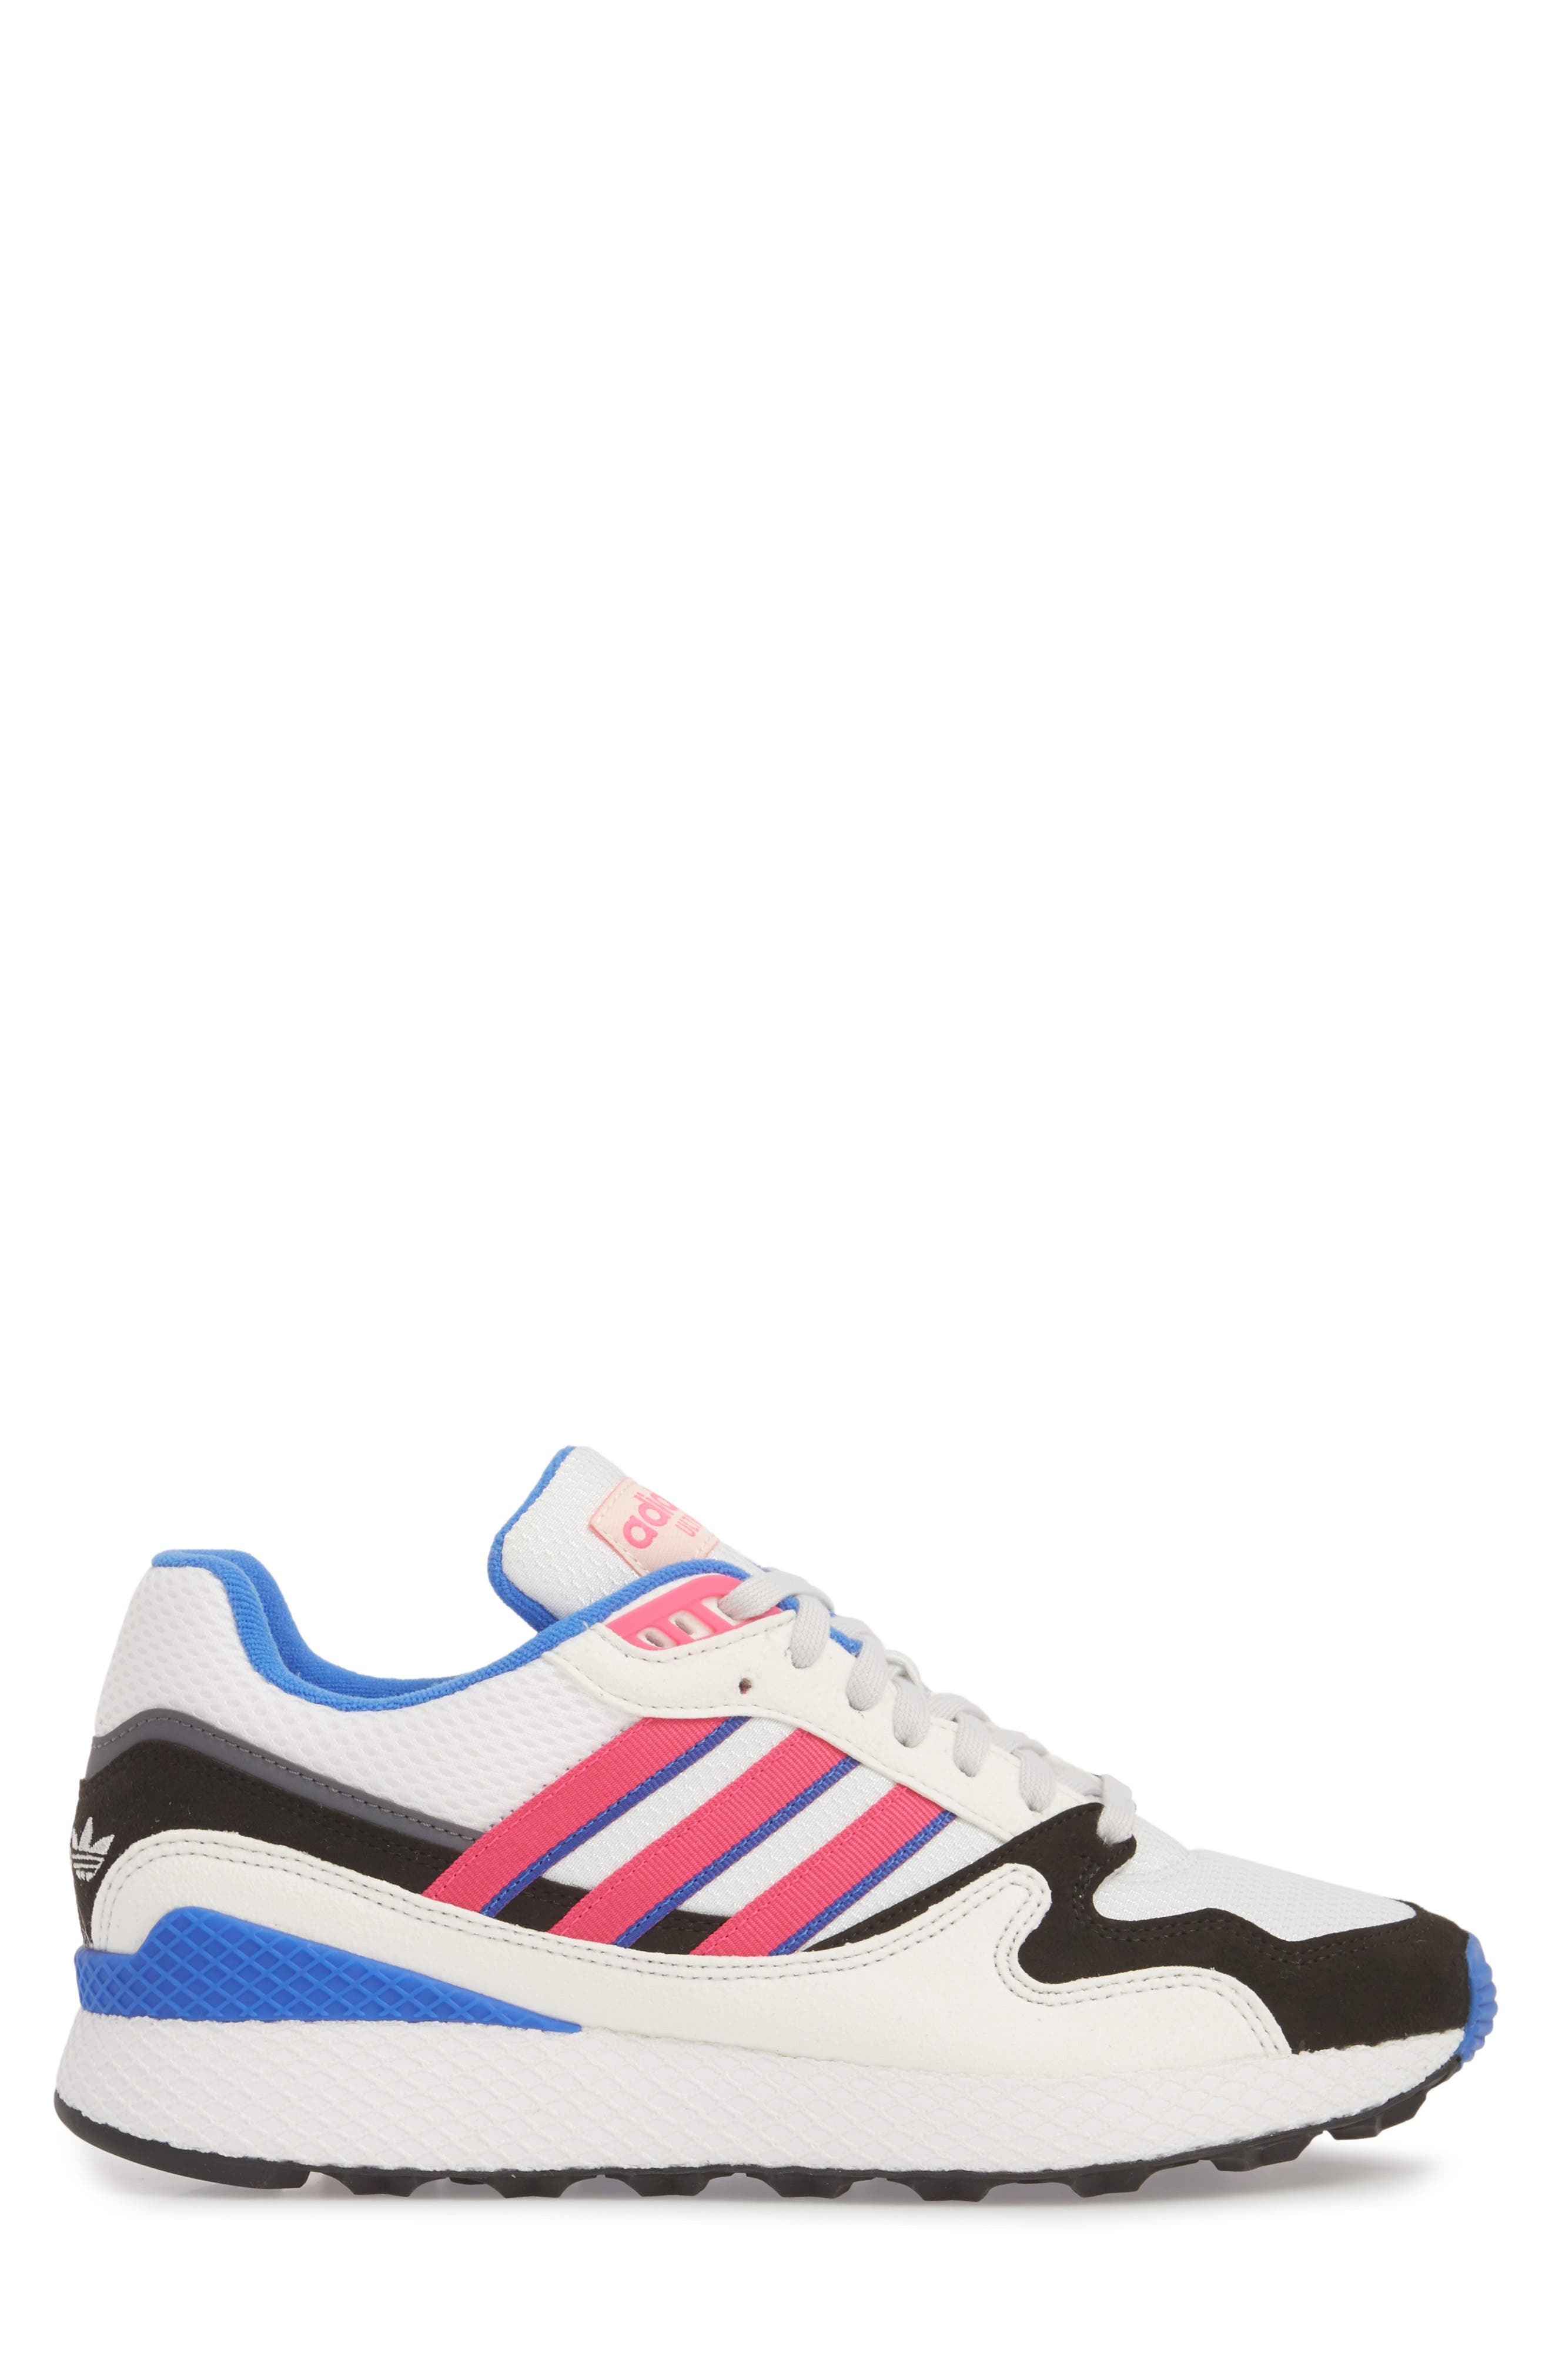 Forest Grove Ultra Tech Sneaker,                             Alternate thumbnail 6, color,                             Crystal White/ Pink/ Black